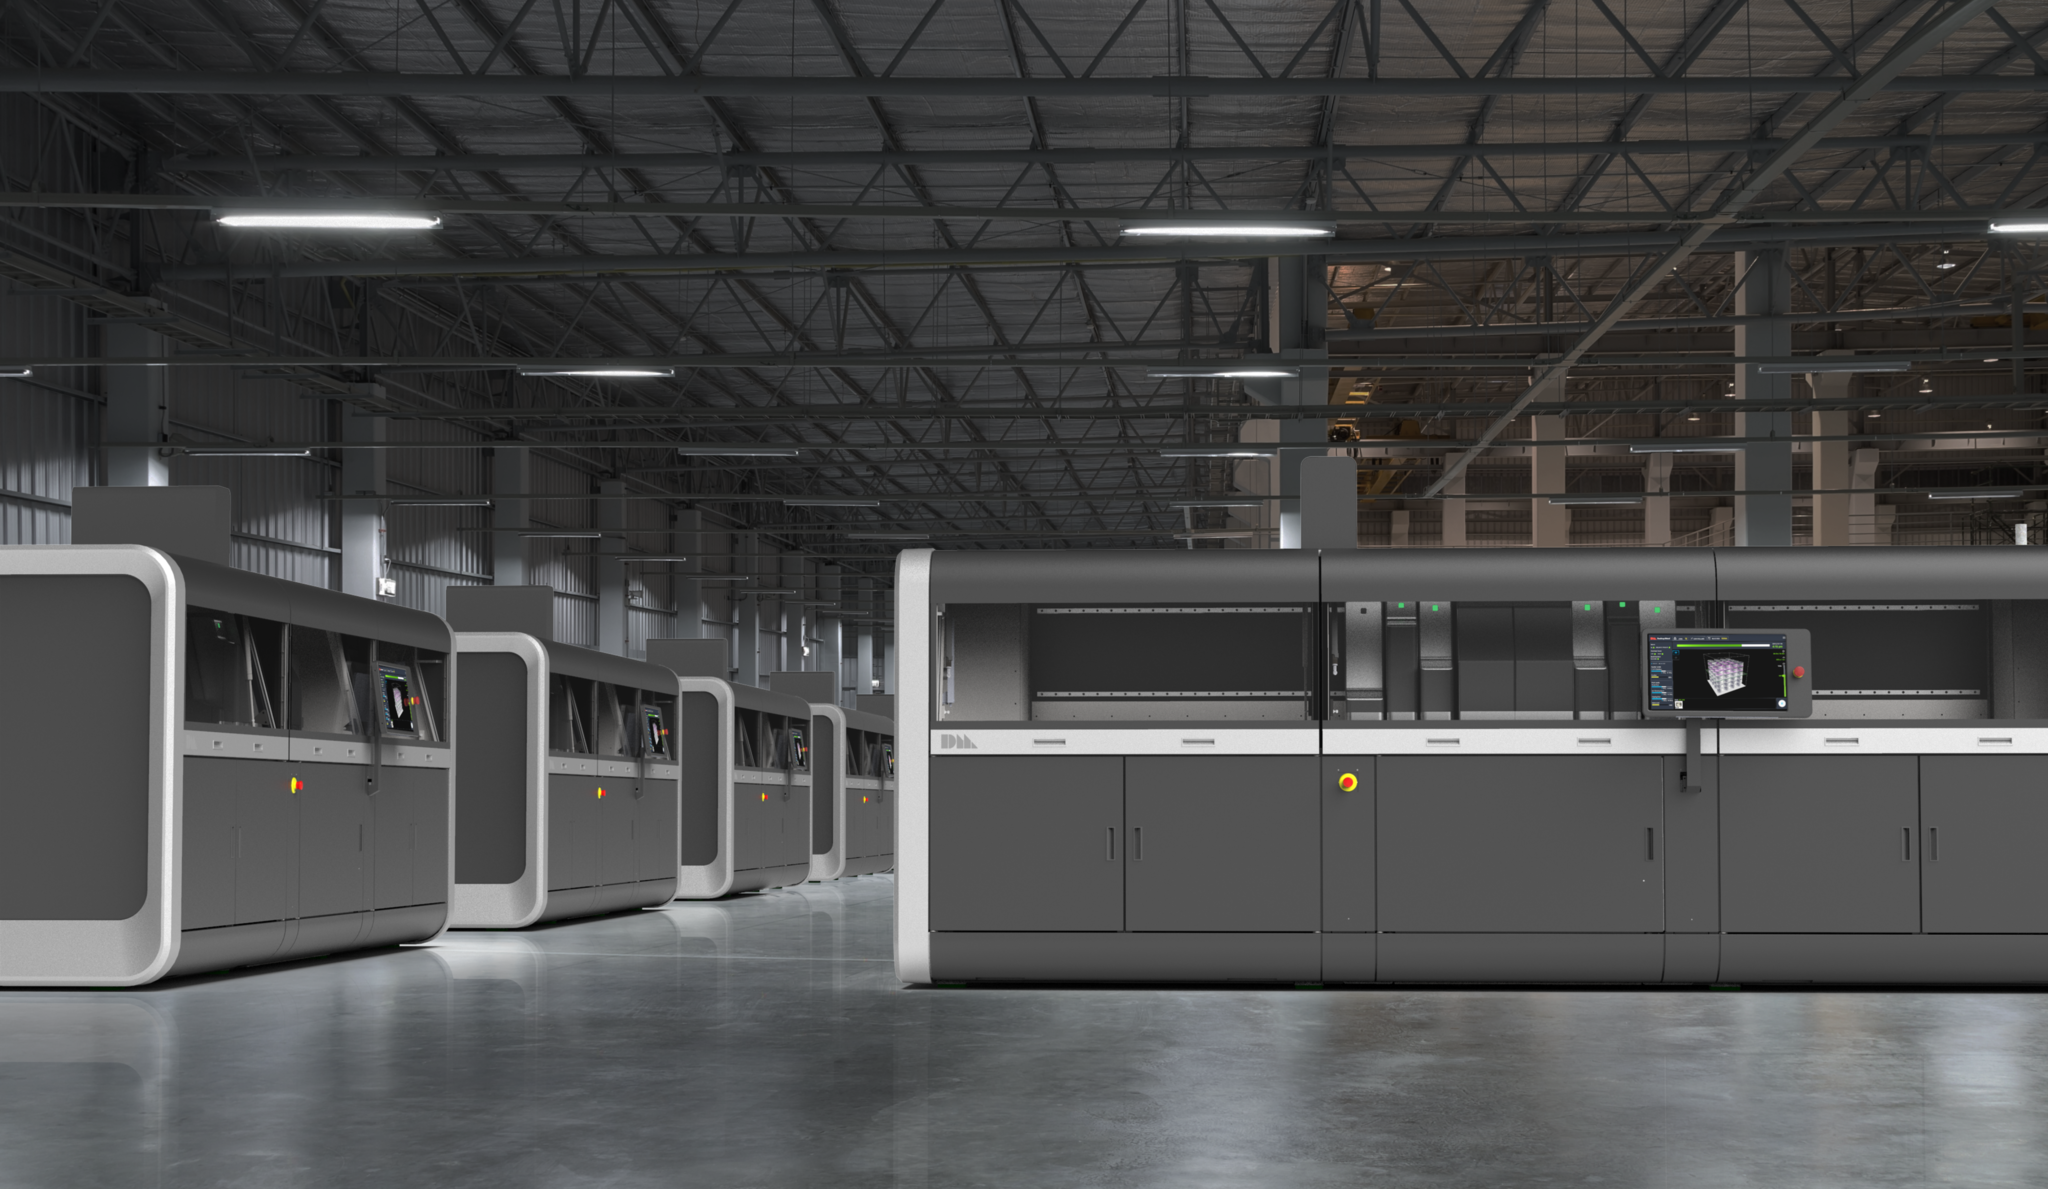 Desktop Metal partners with world's largest Metal Injection Molding